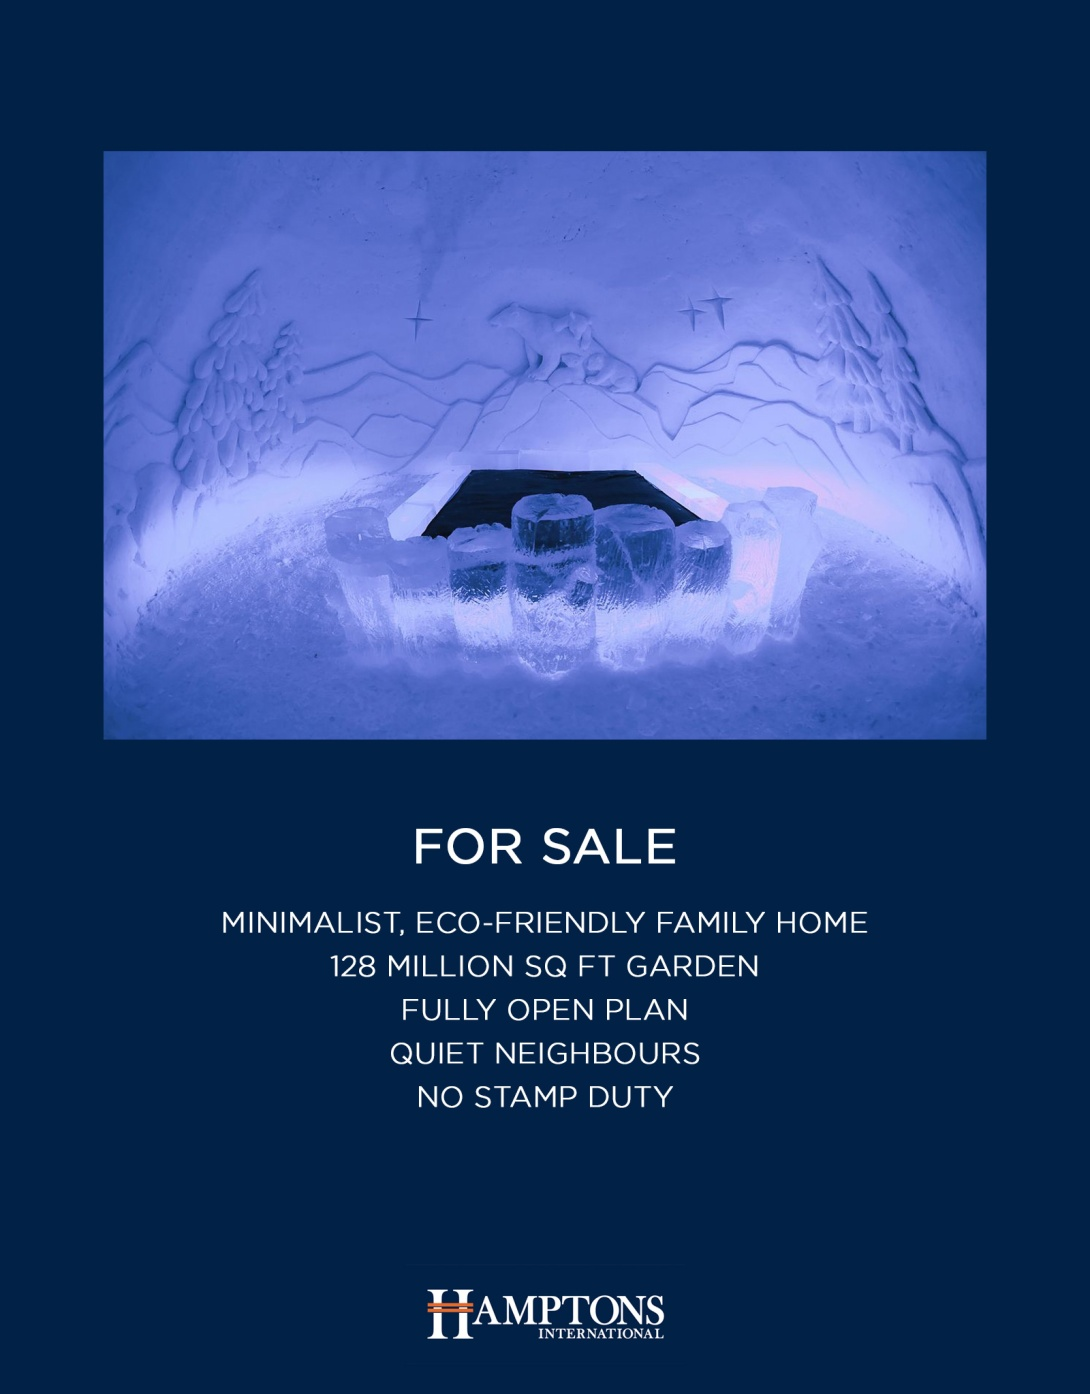 igloo advertising concept - estate agent idea